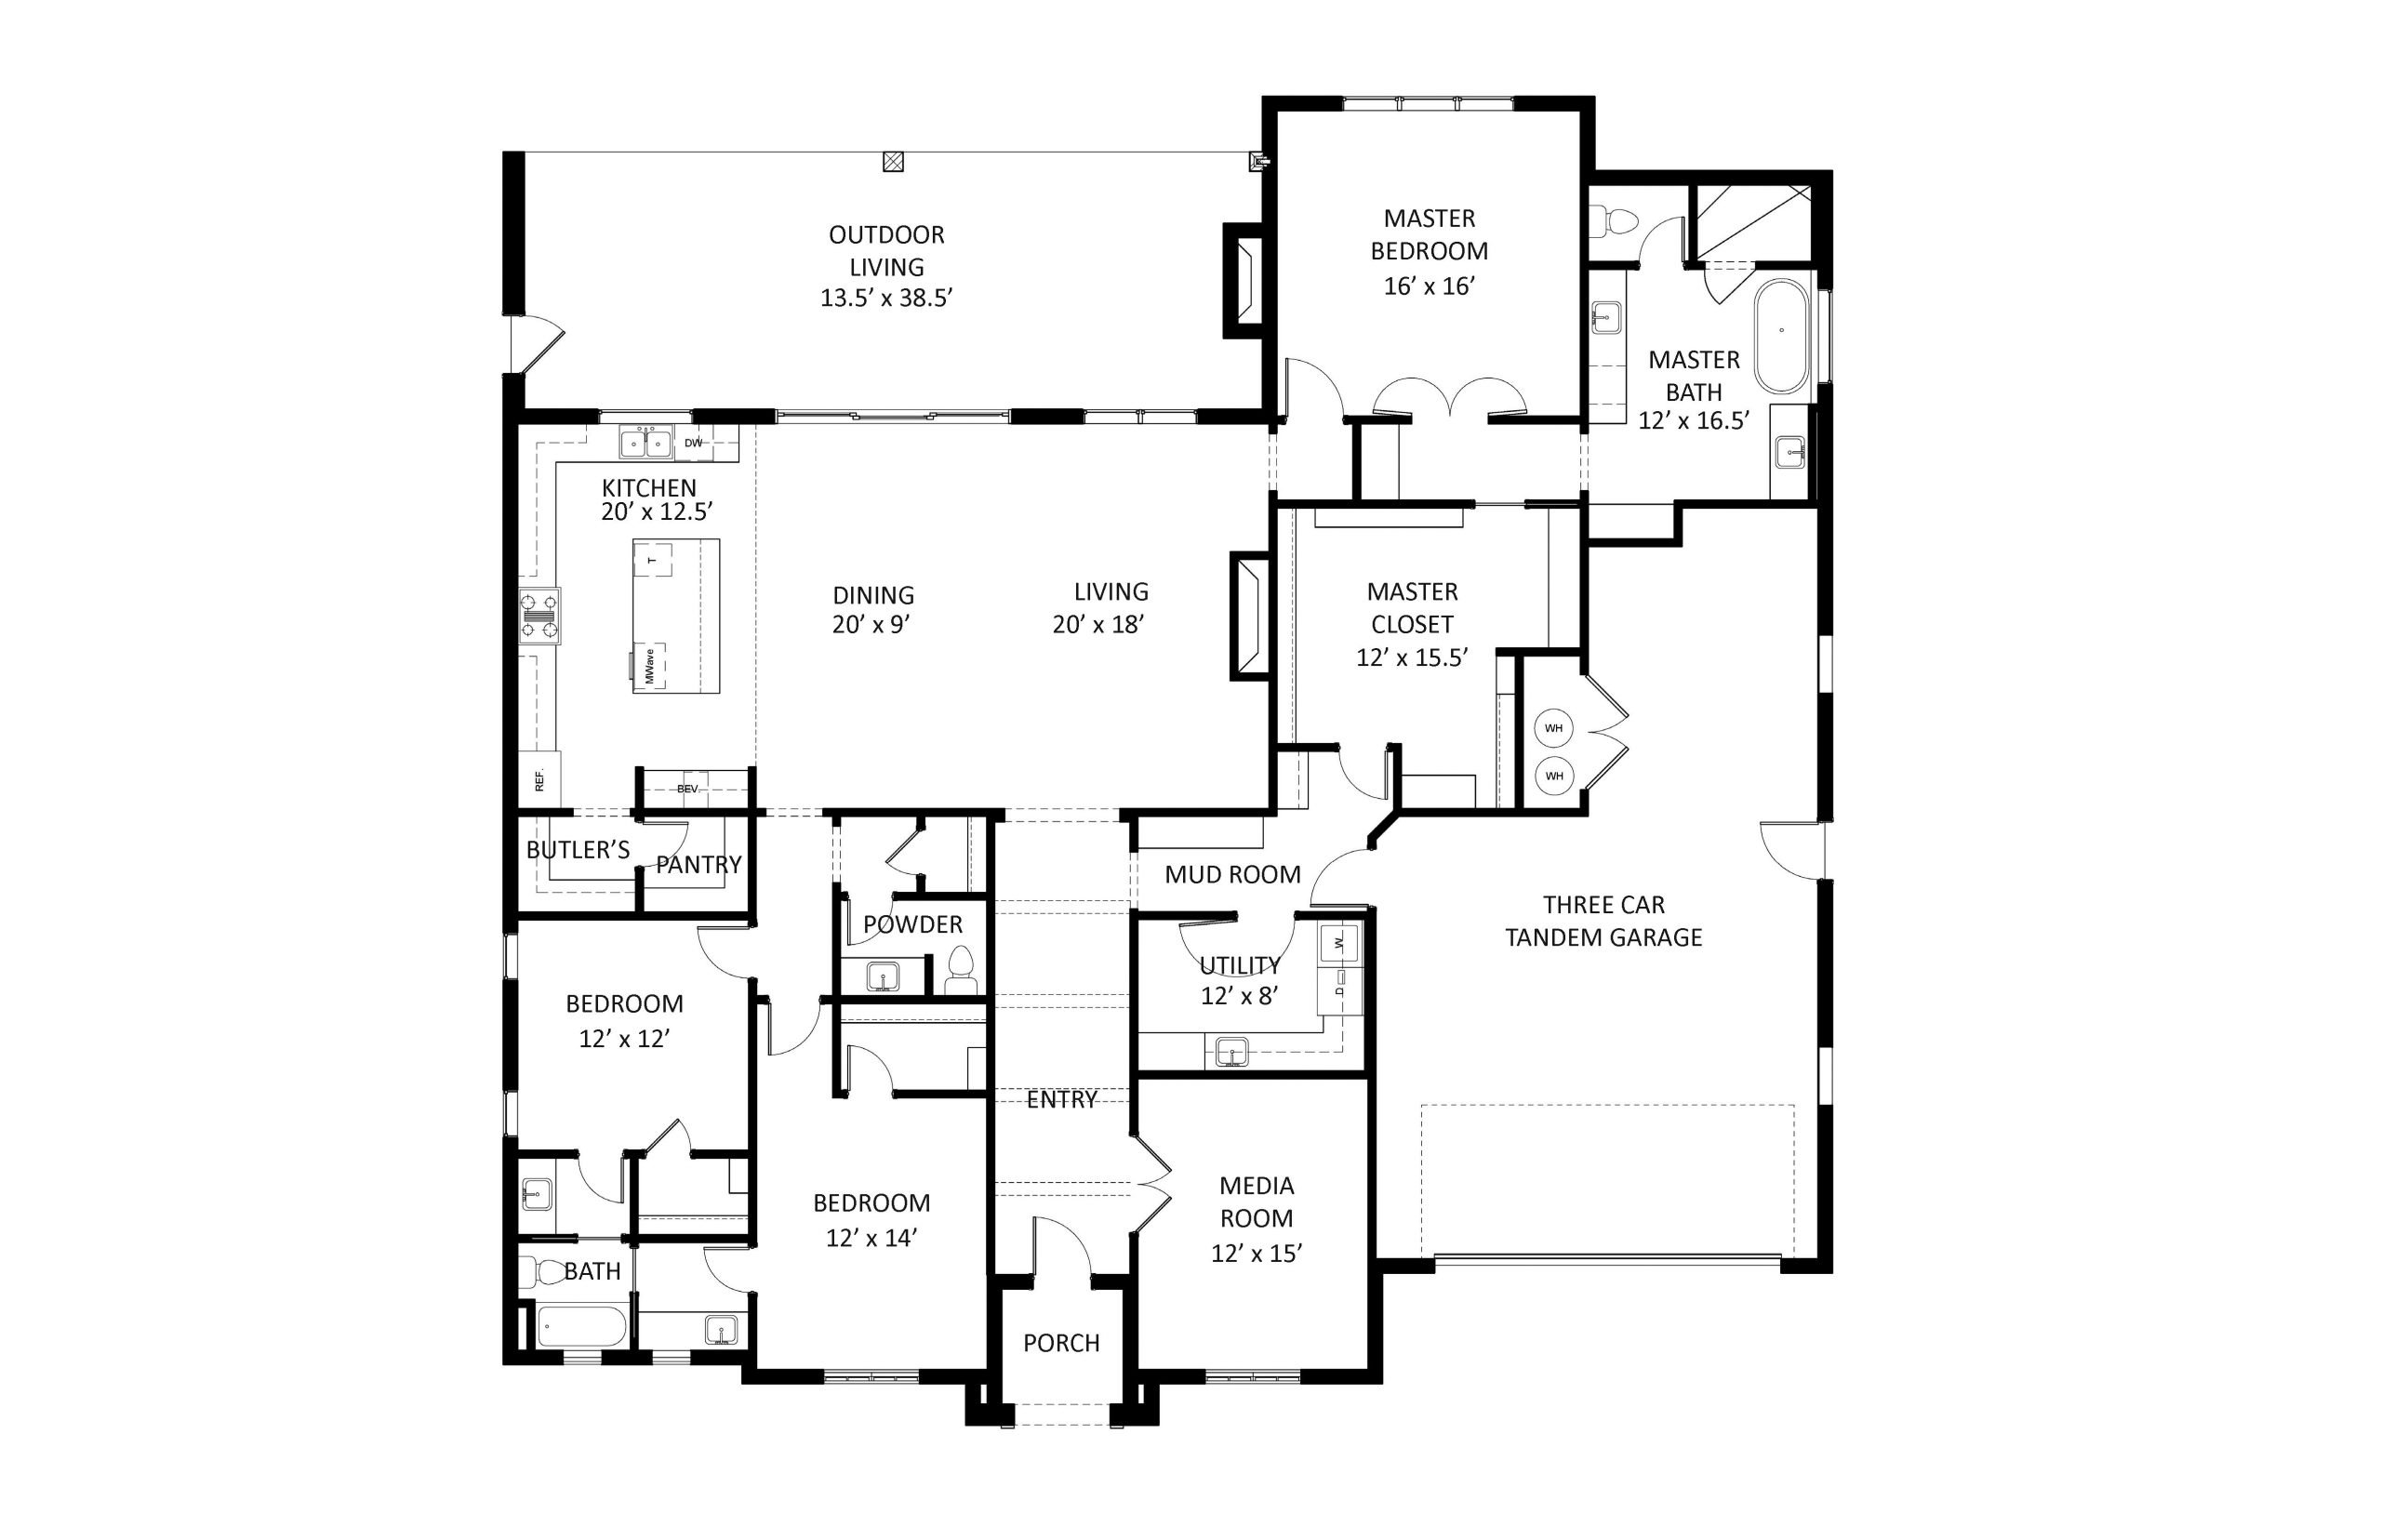 The Murphy Floor Plan Labeled